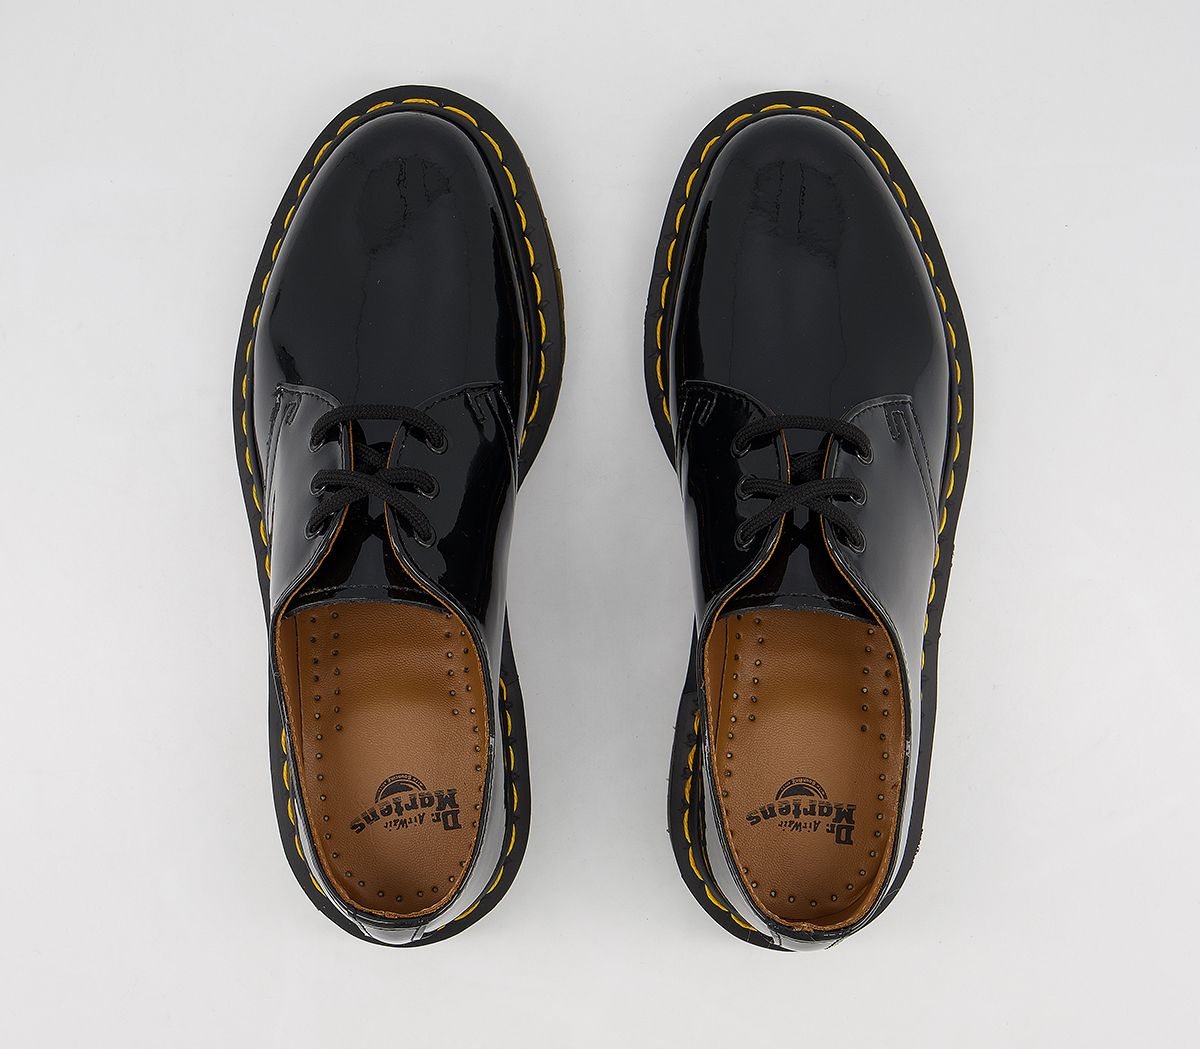 711ceb73ad Dr. Martens 3 Eyelet Shoes Black Patent - Flats